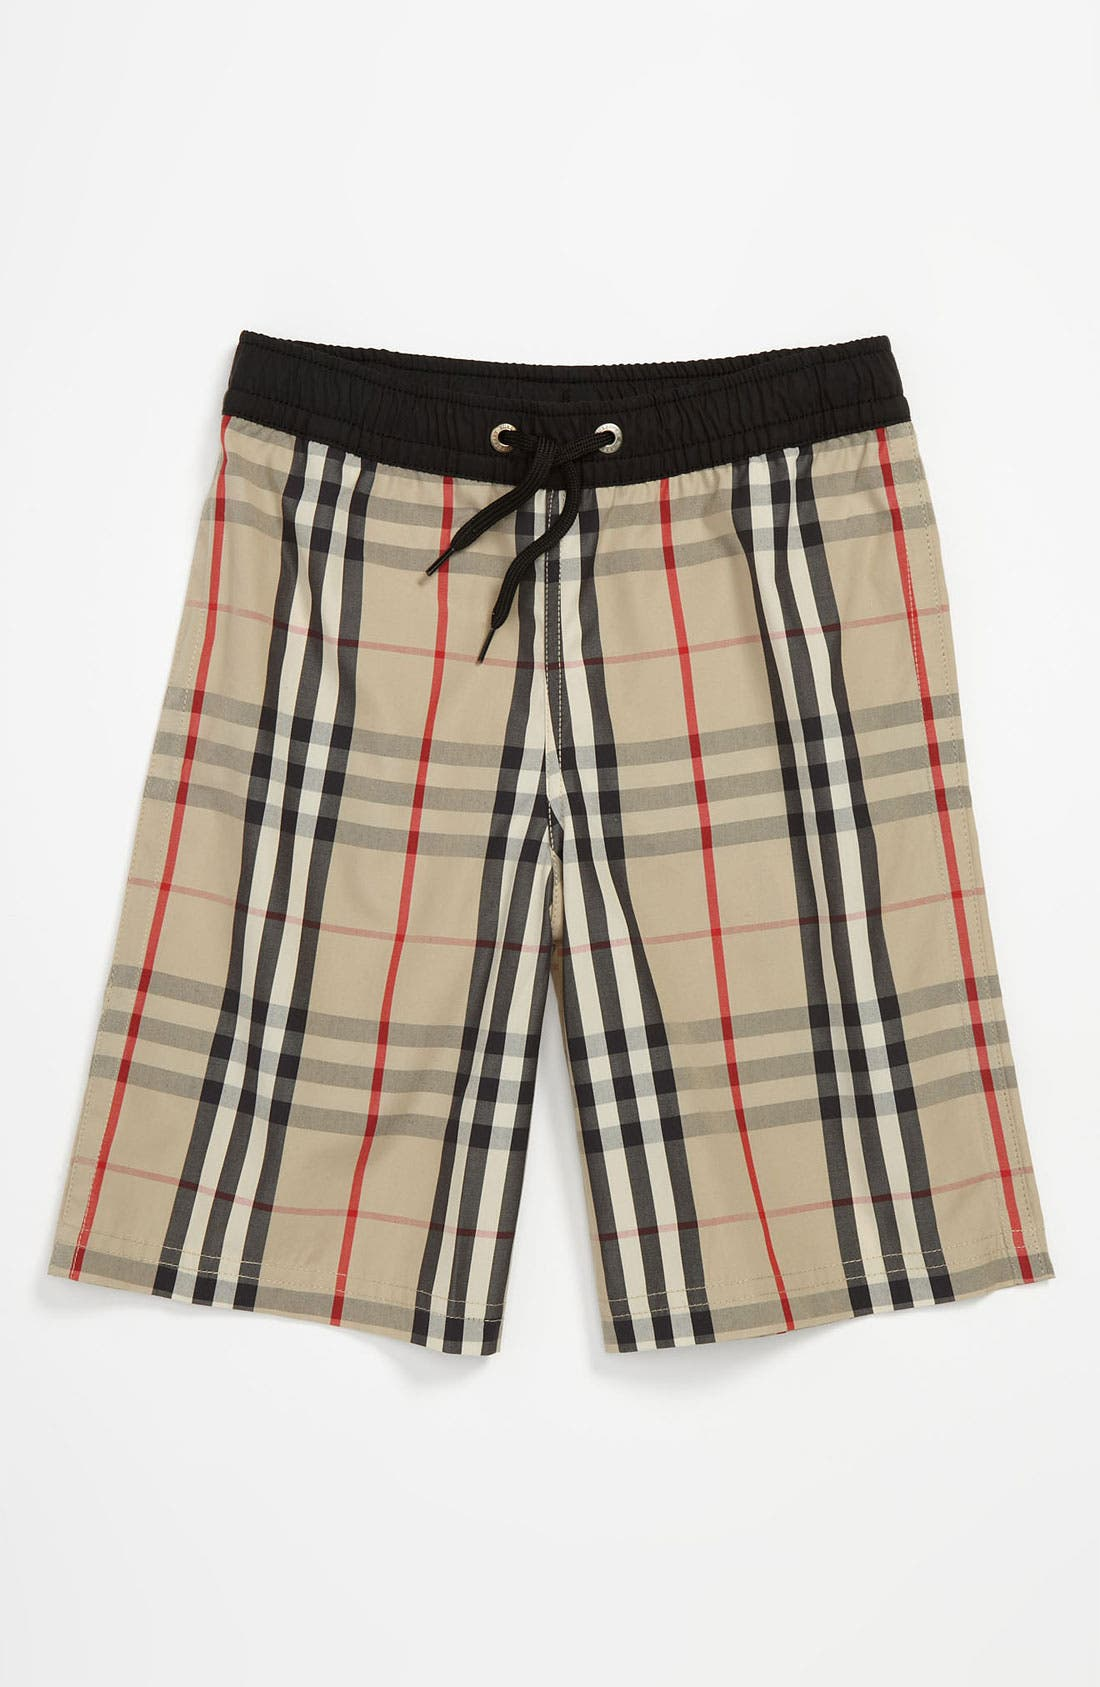 Main Image - Burberry 'Atilony' Swim Shorts (Big Boys)